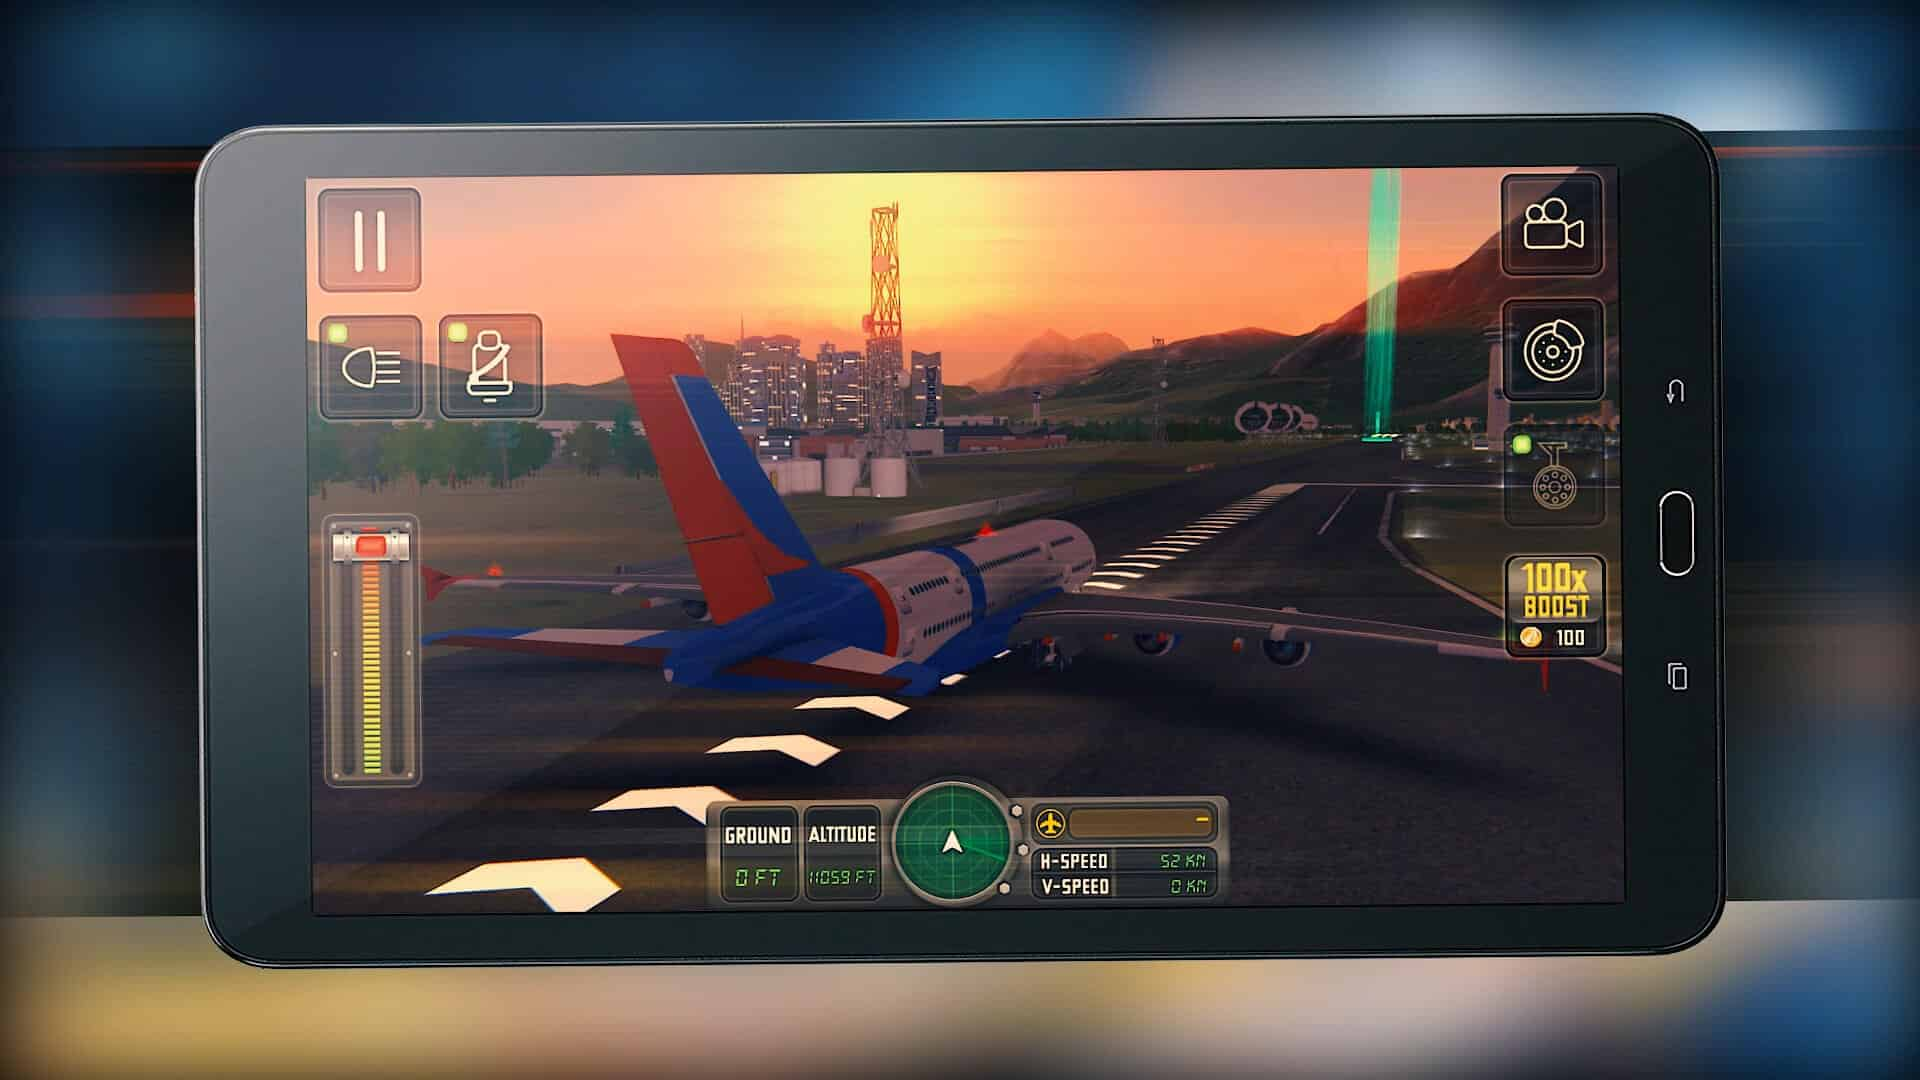 10 Best Android Flight Simulator Games